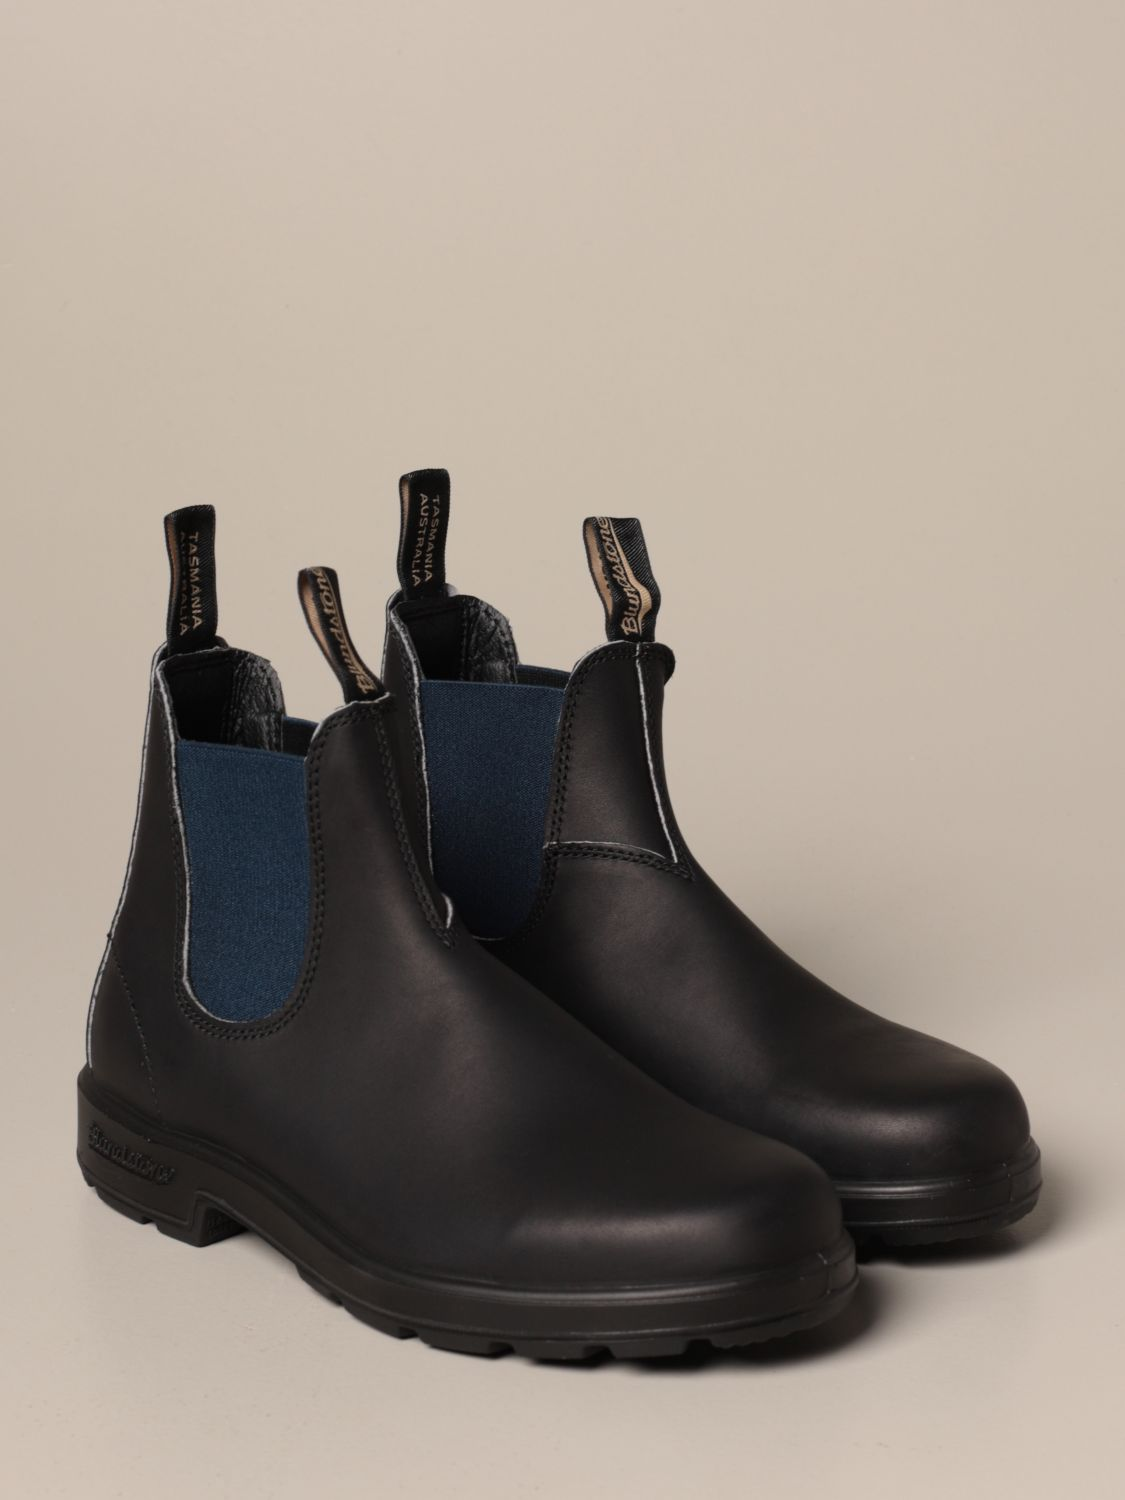 Boots Blundstone: Boots men Blundstone navy 2